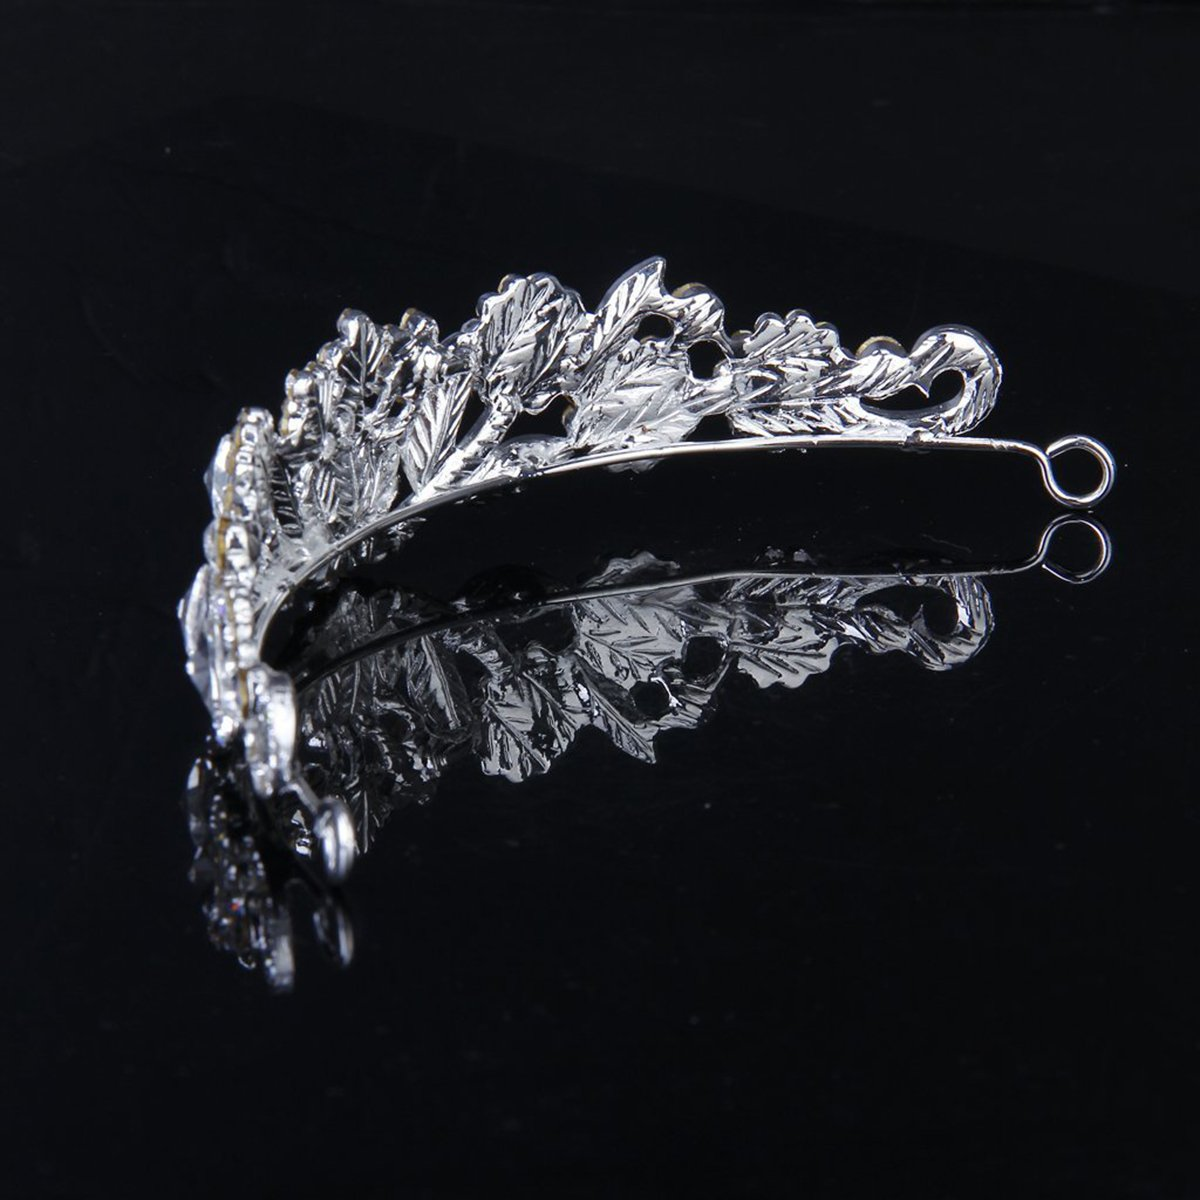 Tinksky Wedding Bridal Crystal Rhinestone Hair Barrettes Hairband Hair Loop (Sliver)